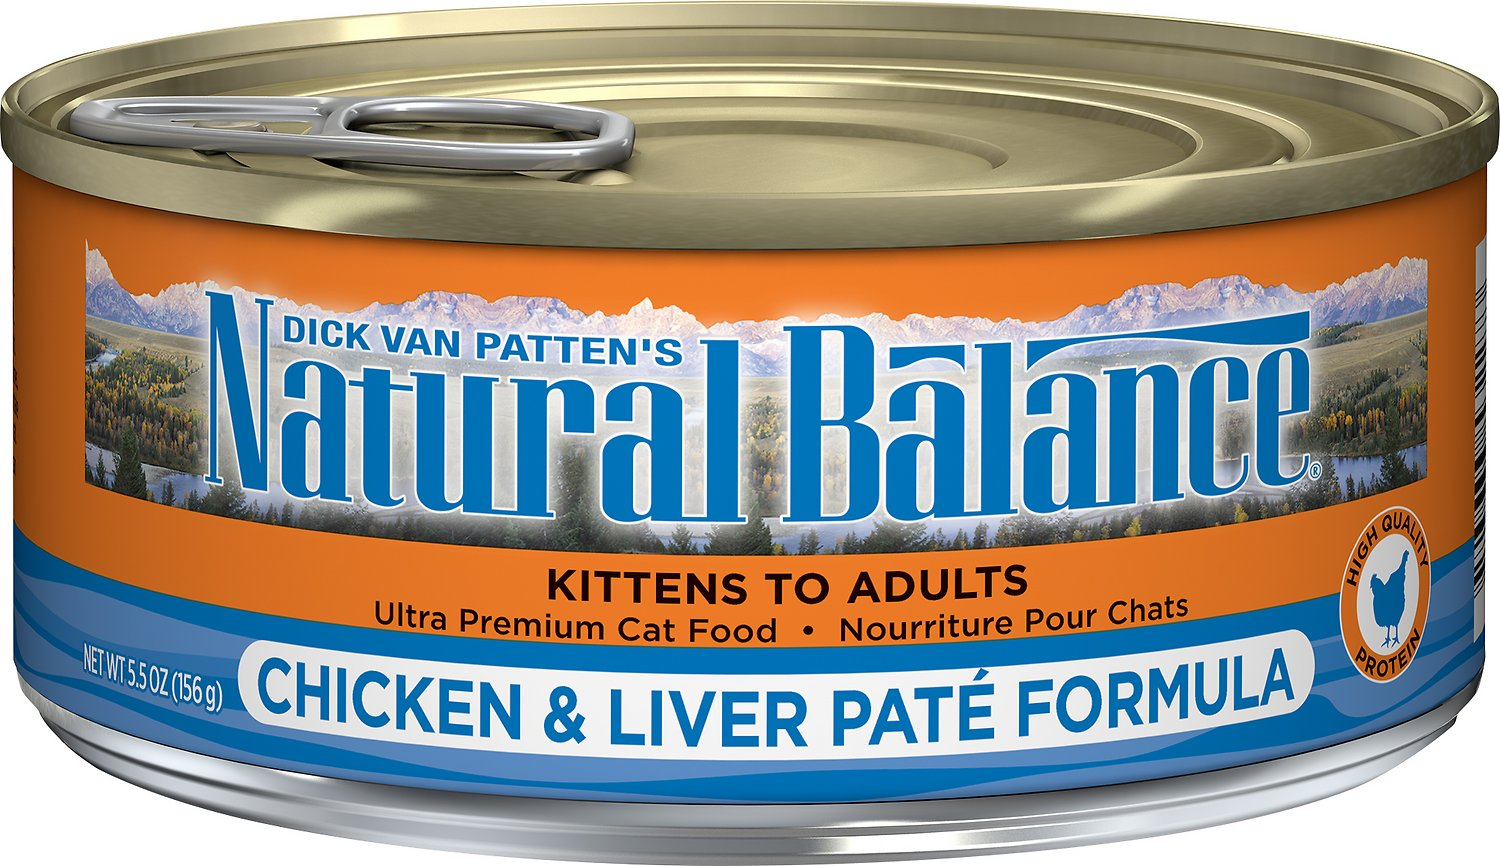 Which Natural Balance Canned Dog Food Is Pate